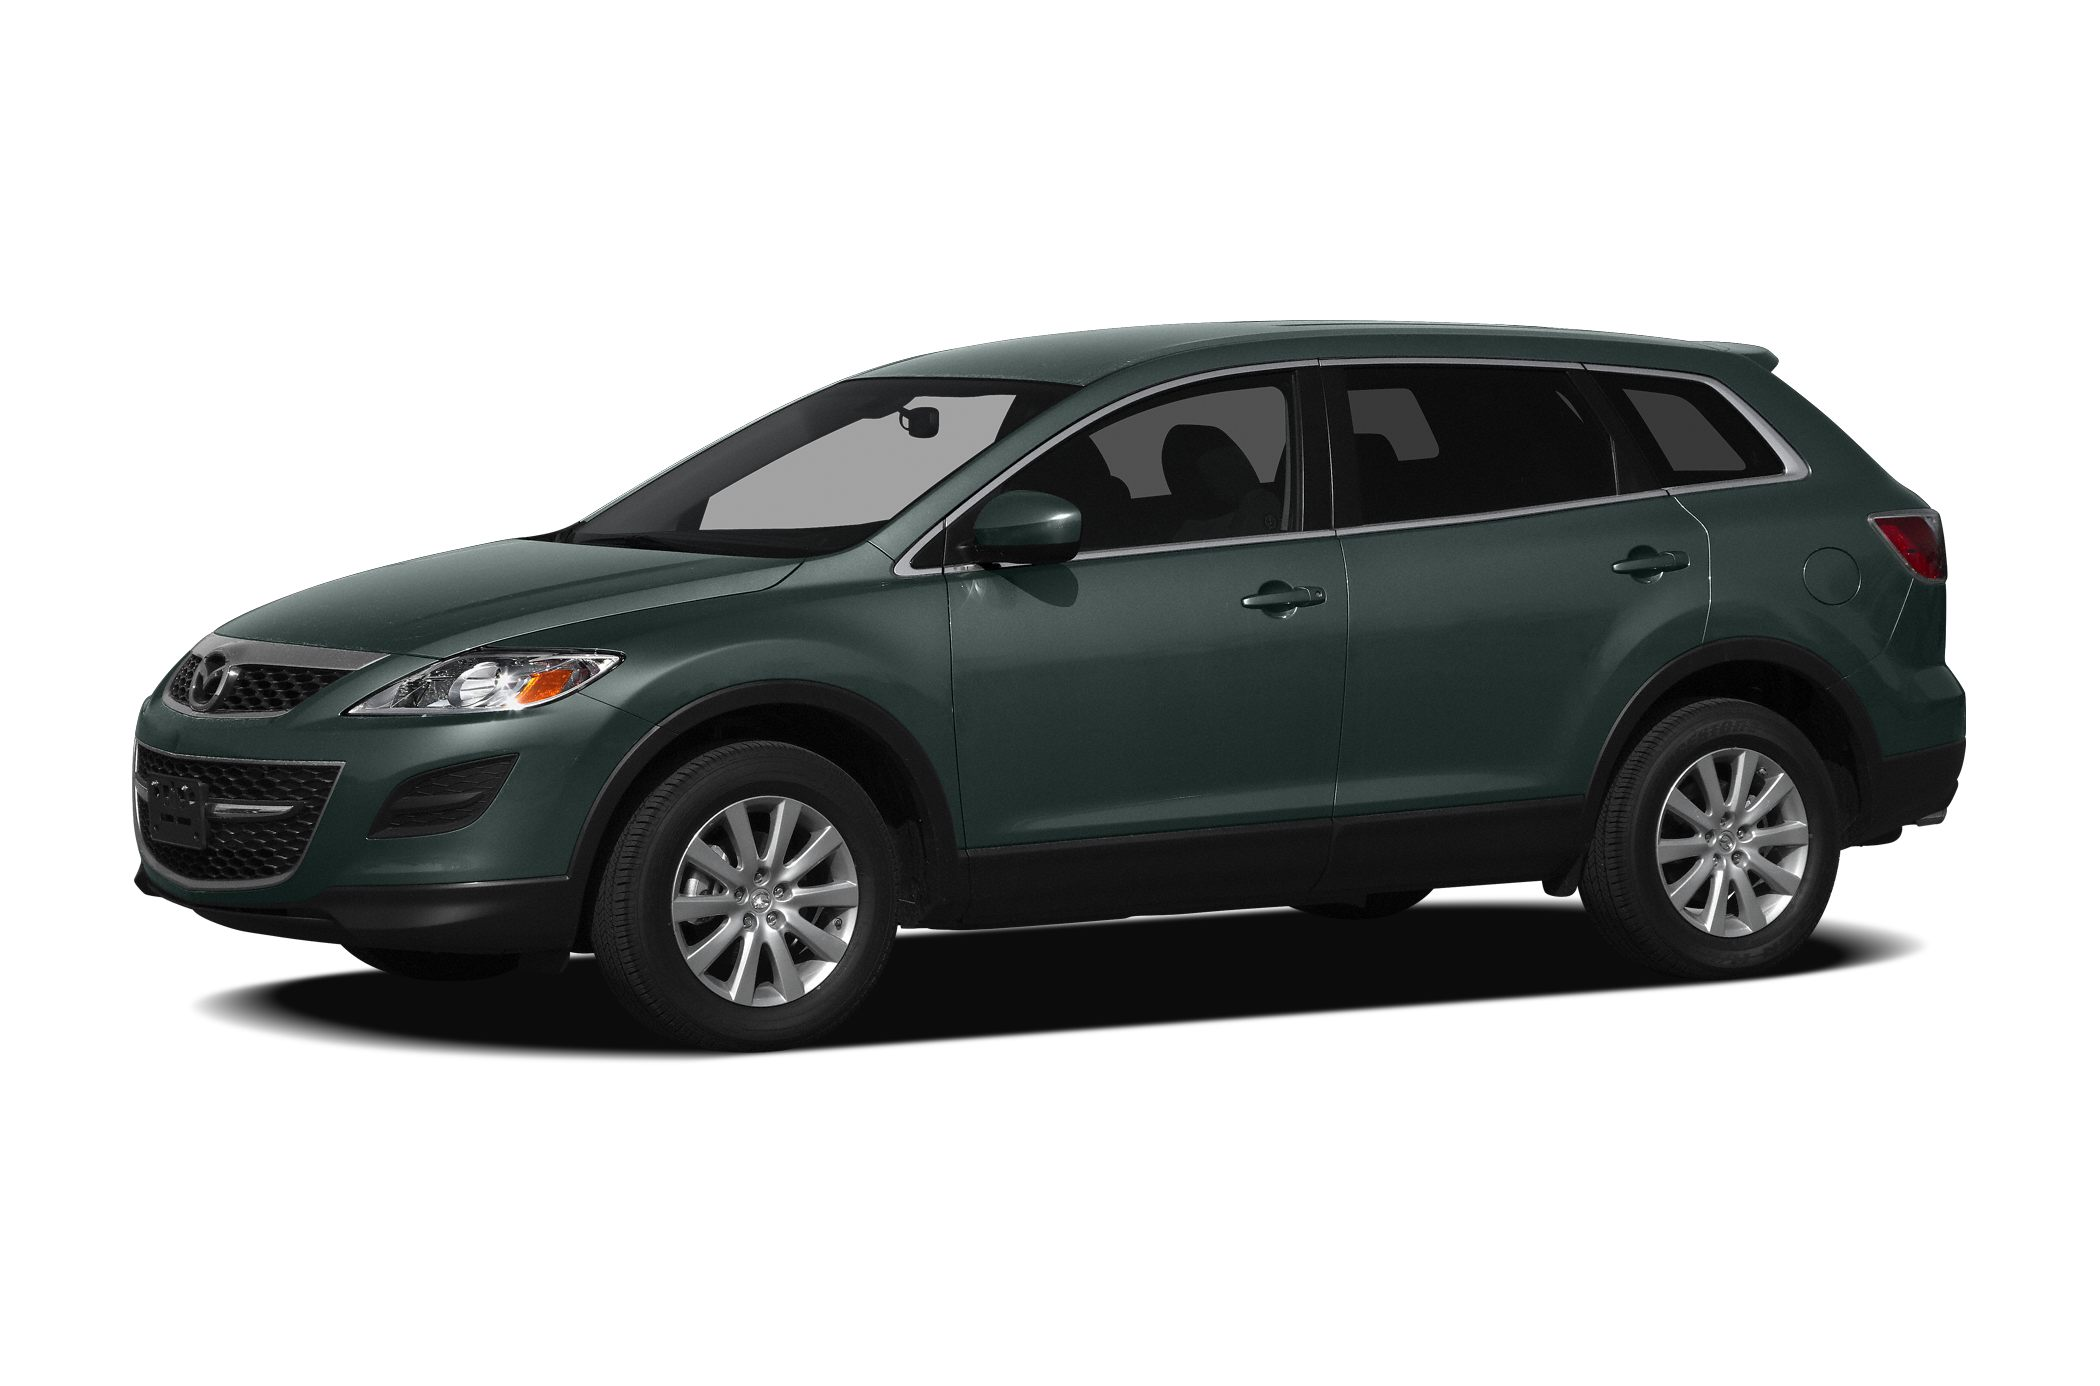 2012 Mazda CX-9 Sport SUV for sale in Springfield for $19,989 with 51,657 miles.